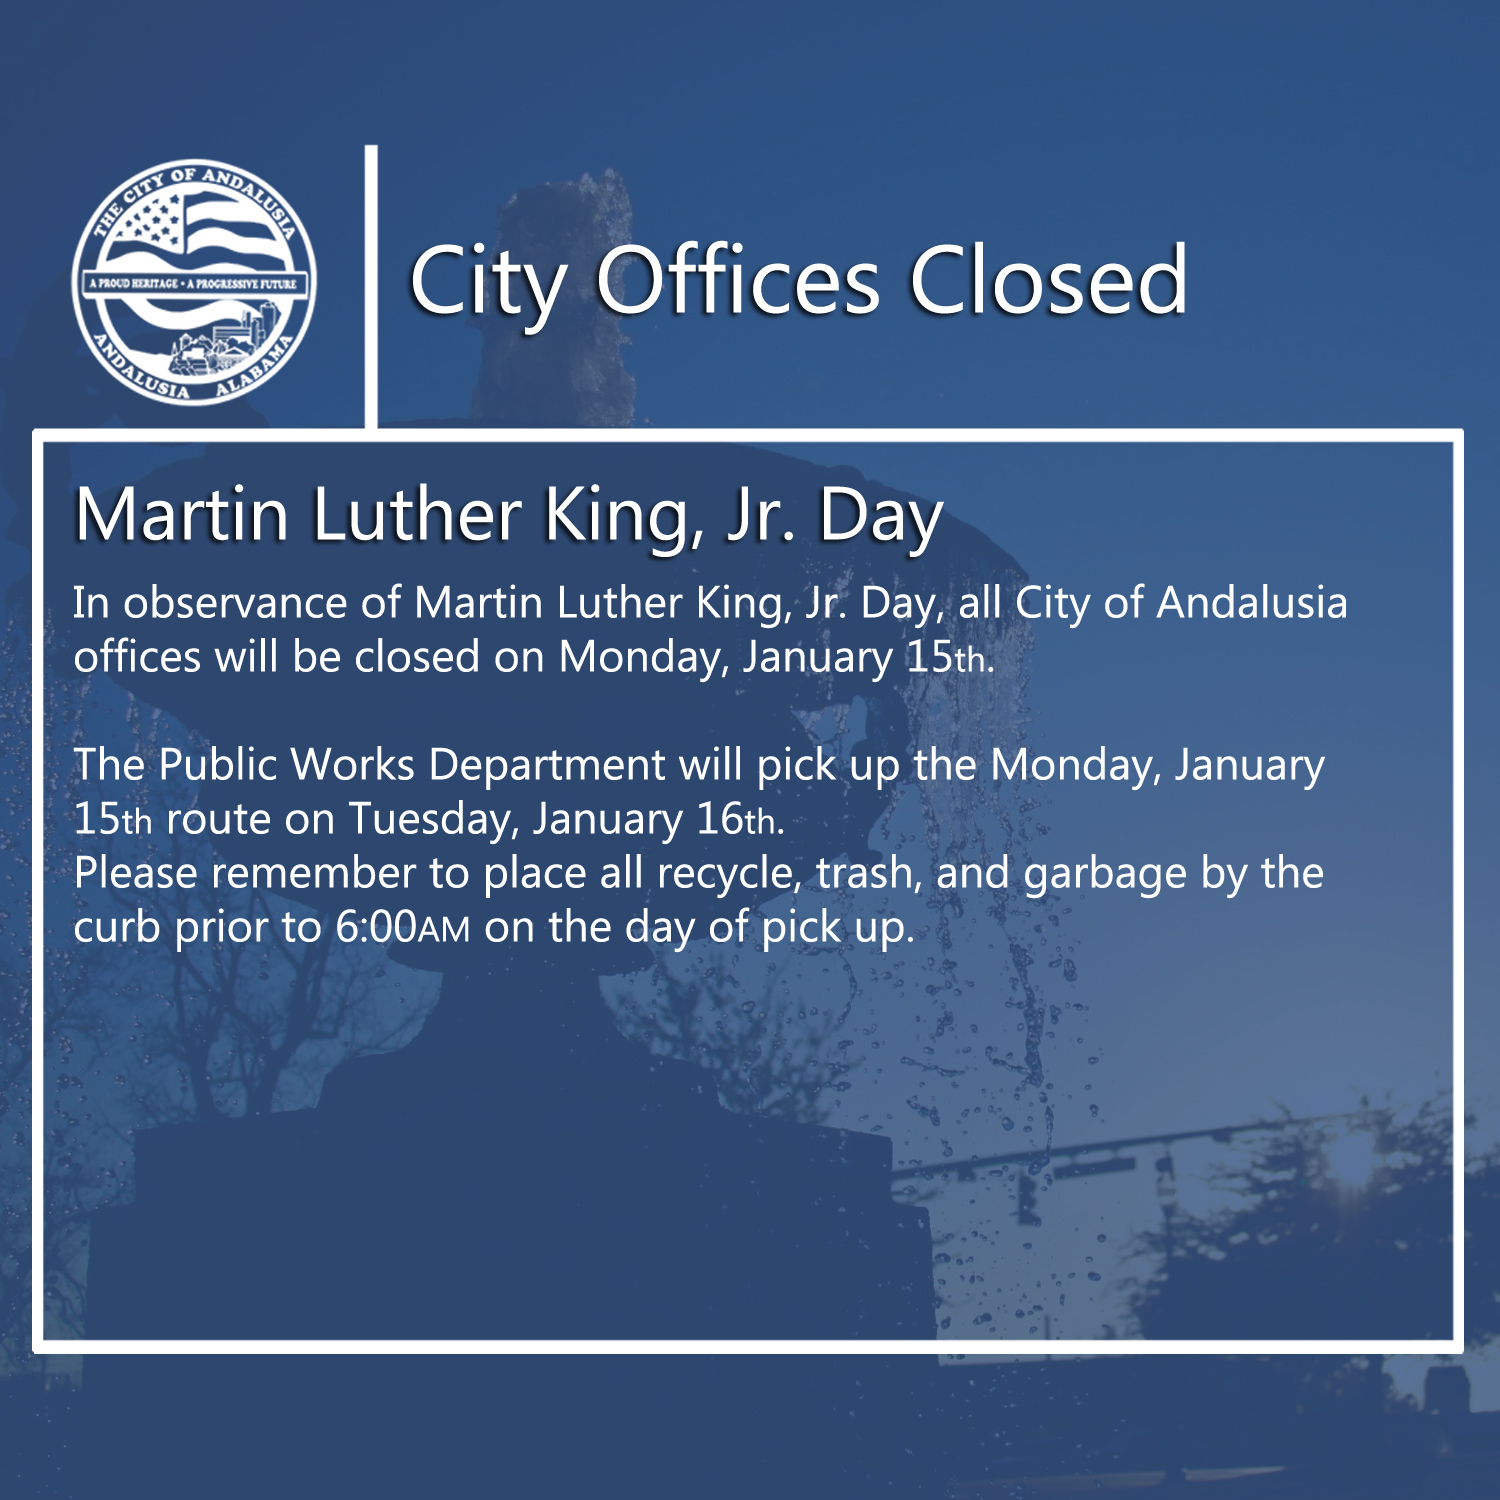 Facebook - City Offices Closed-MLKJ Day.jpg